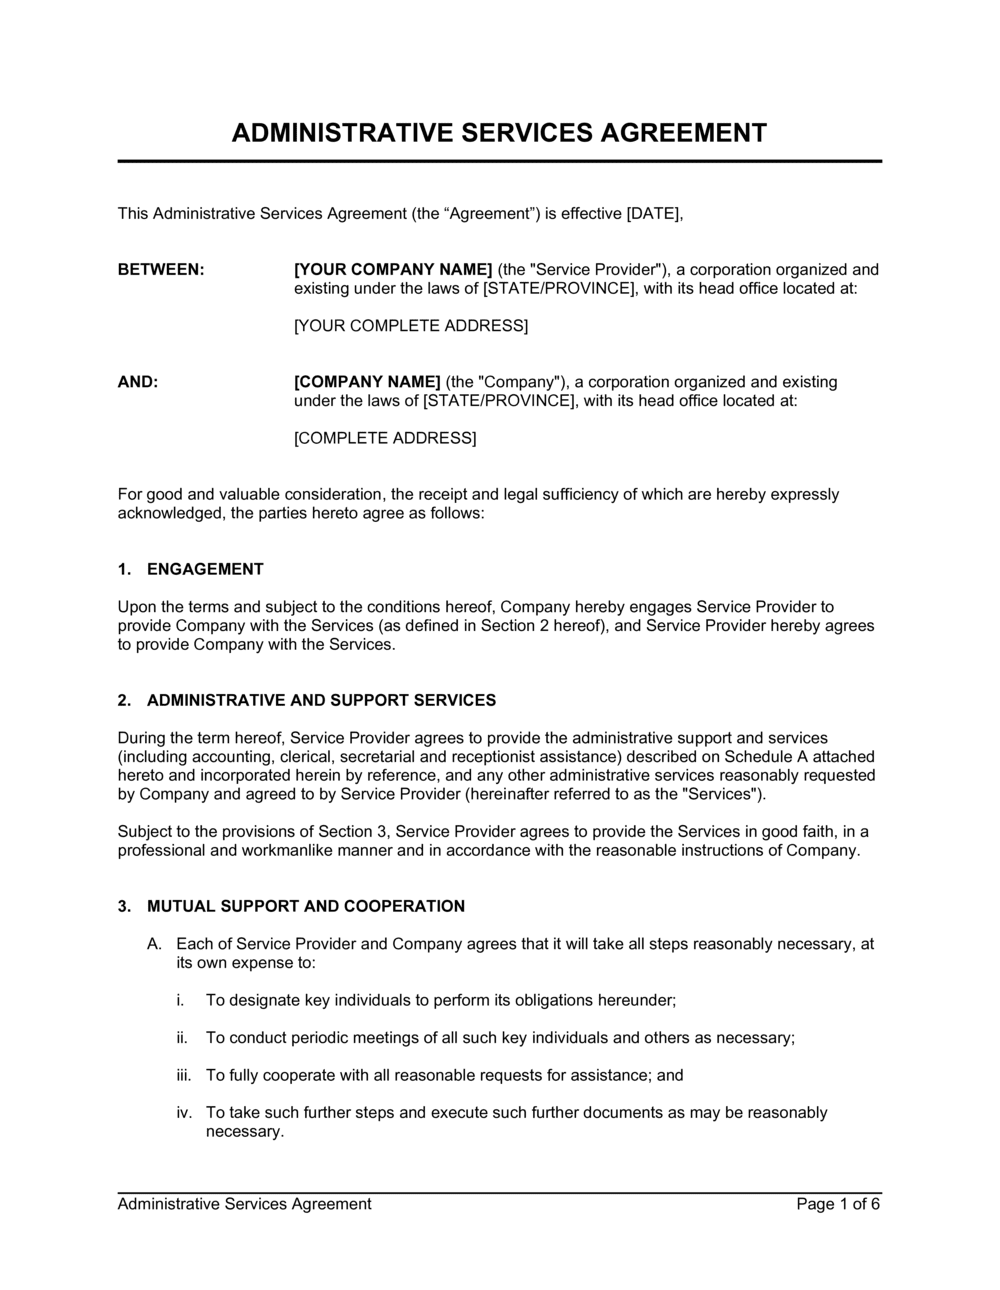 Business-in-a-Box's Administrative Services Agreement Template